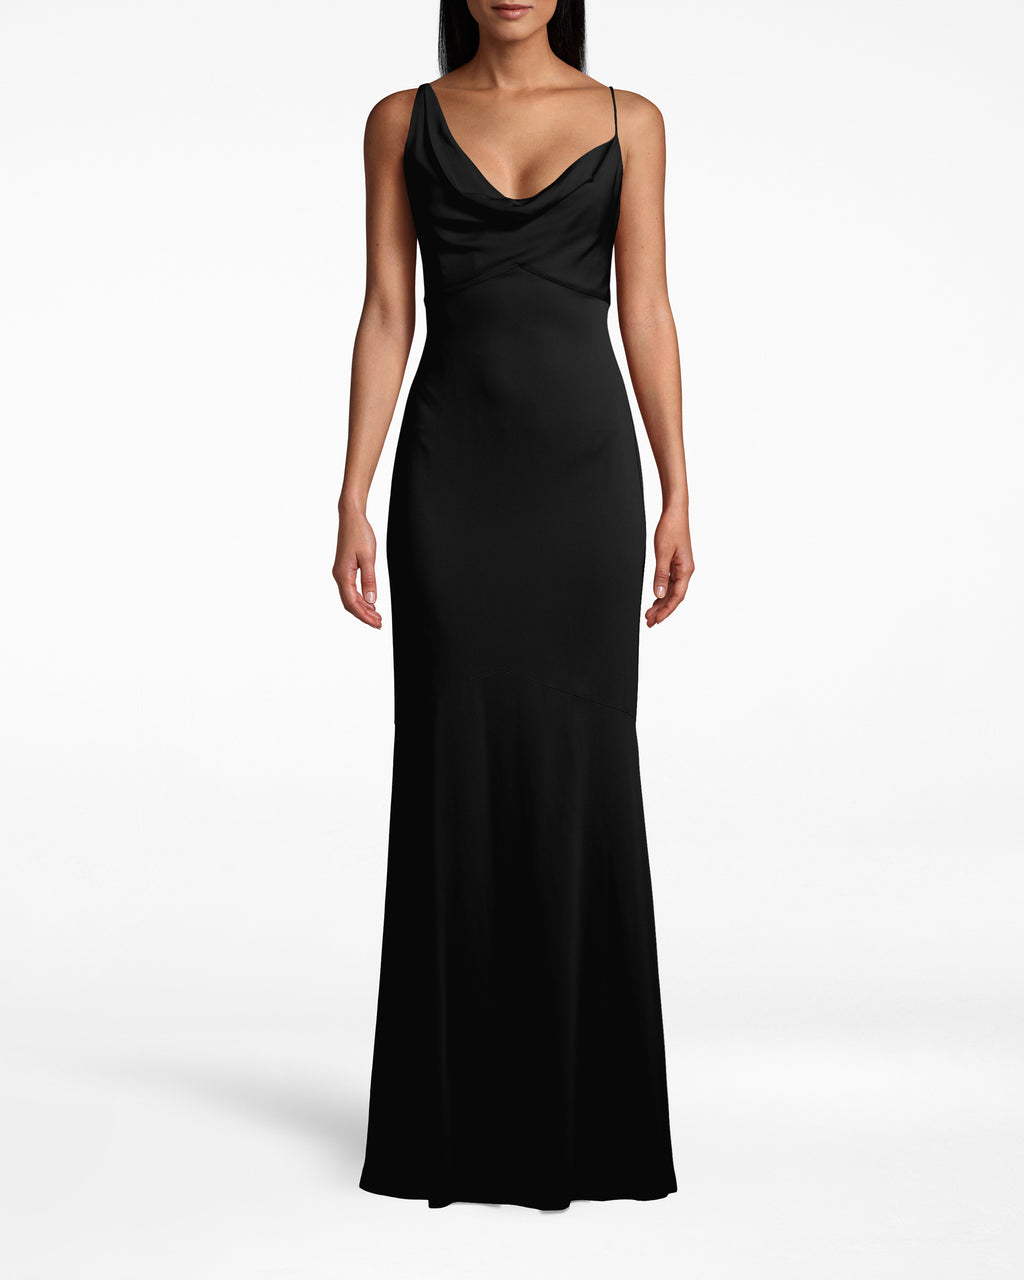 CC10040 - NEW STRETCH CREPE ASYMMETRIC COWL NECK GOWN - dresses - long - THIS STUNNING GOWN HAS A TEXTURAL COWL NECK AND FLOOR LENGTH HEM. TWO DIFFERENT STRAPS ADD A SURPRISING BUT CHIC ELEMENT. Add 1 line break STYLIST TIP: WEAR WITH DAINTY GOLD JEWELRY AND CARRY A FUN CLUTCH.